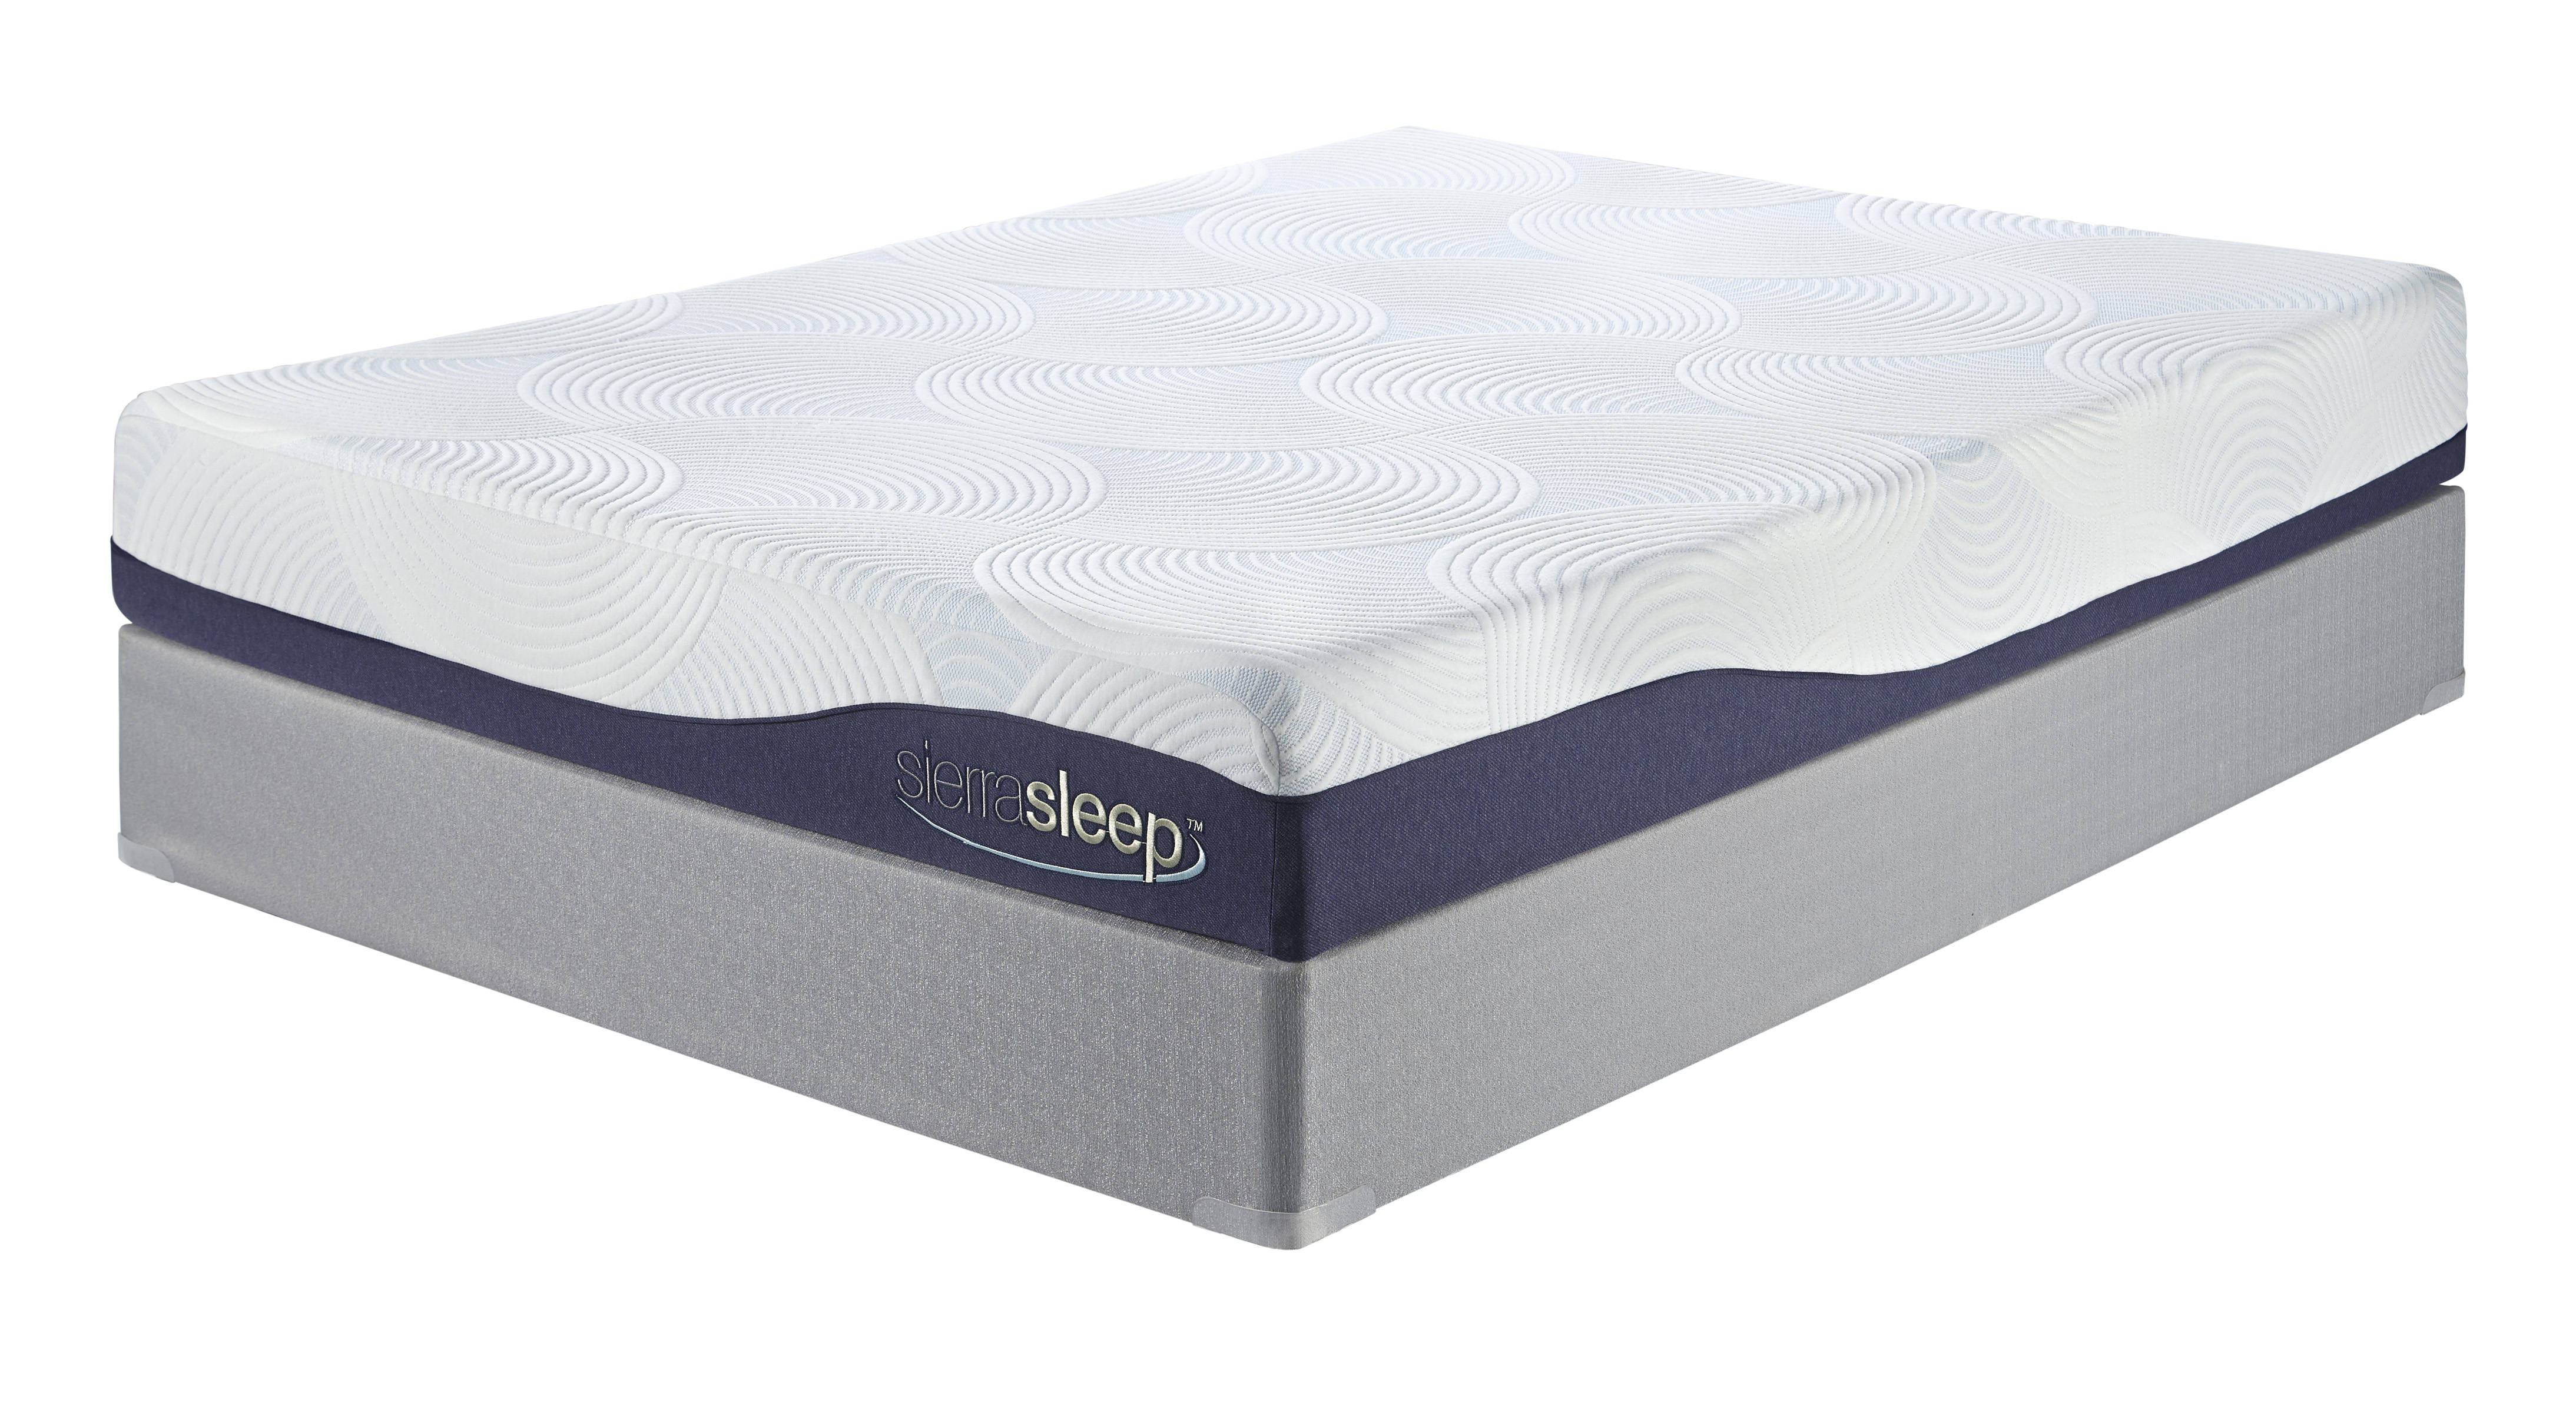 Sierra Sleep Ashley Furniture White Gray Queen Mattress With Foundation The Classy Home